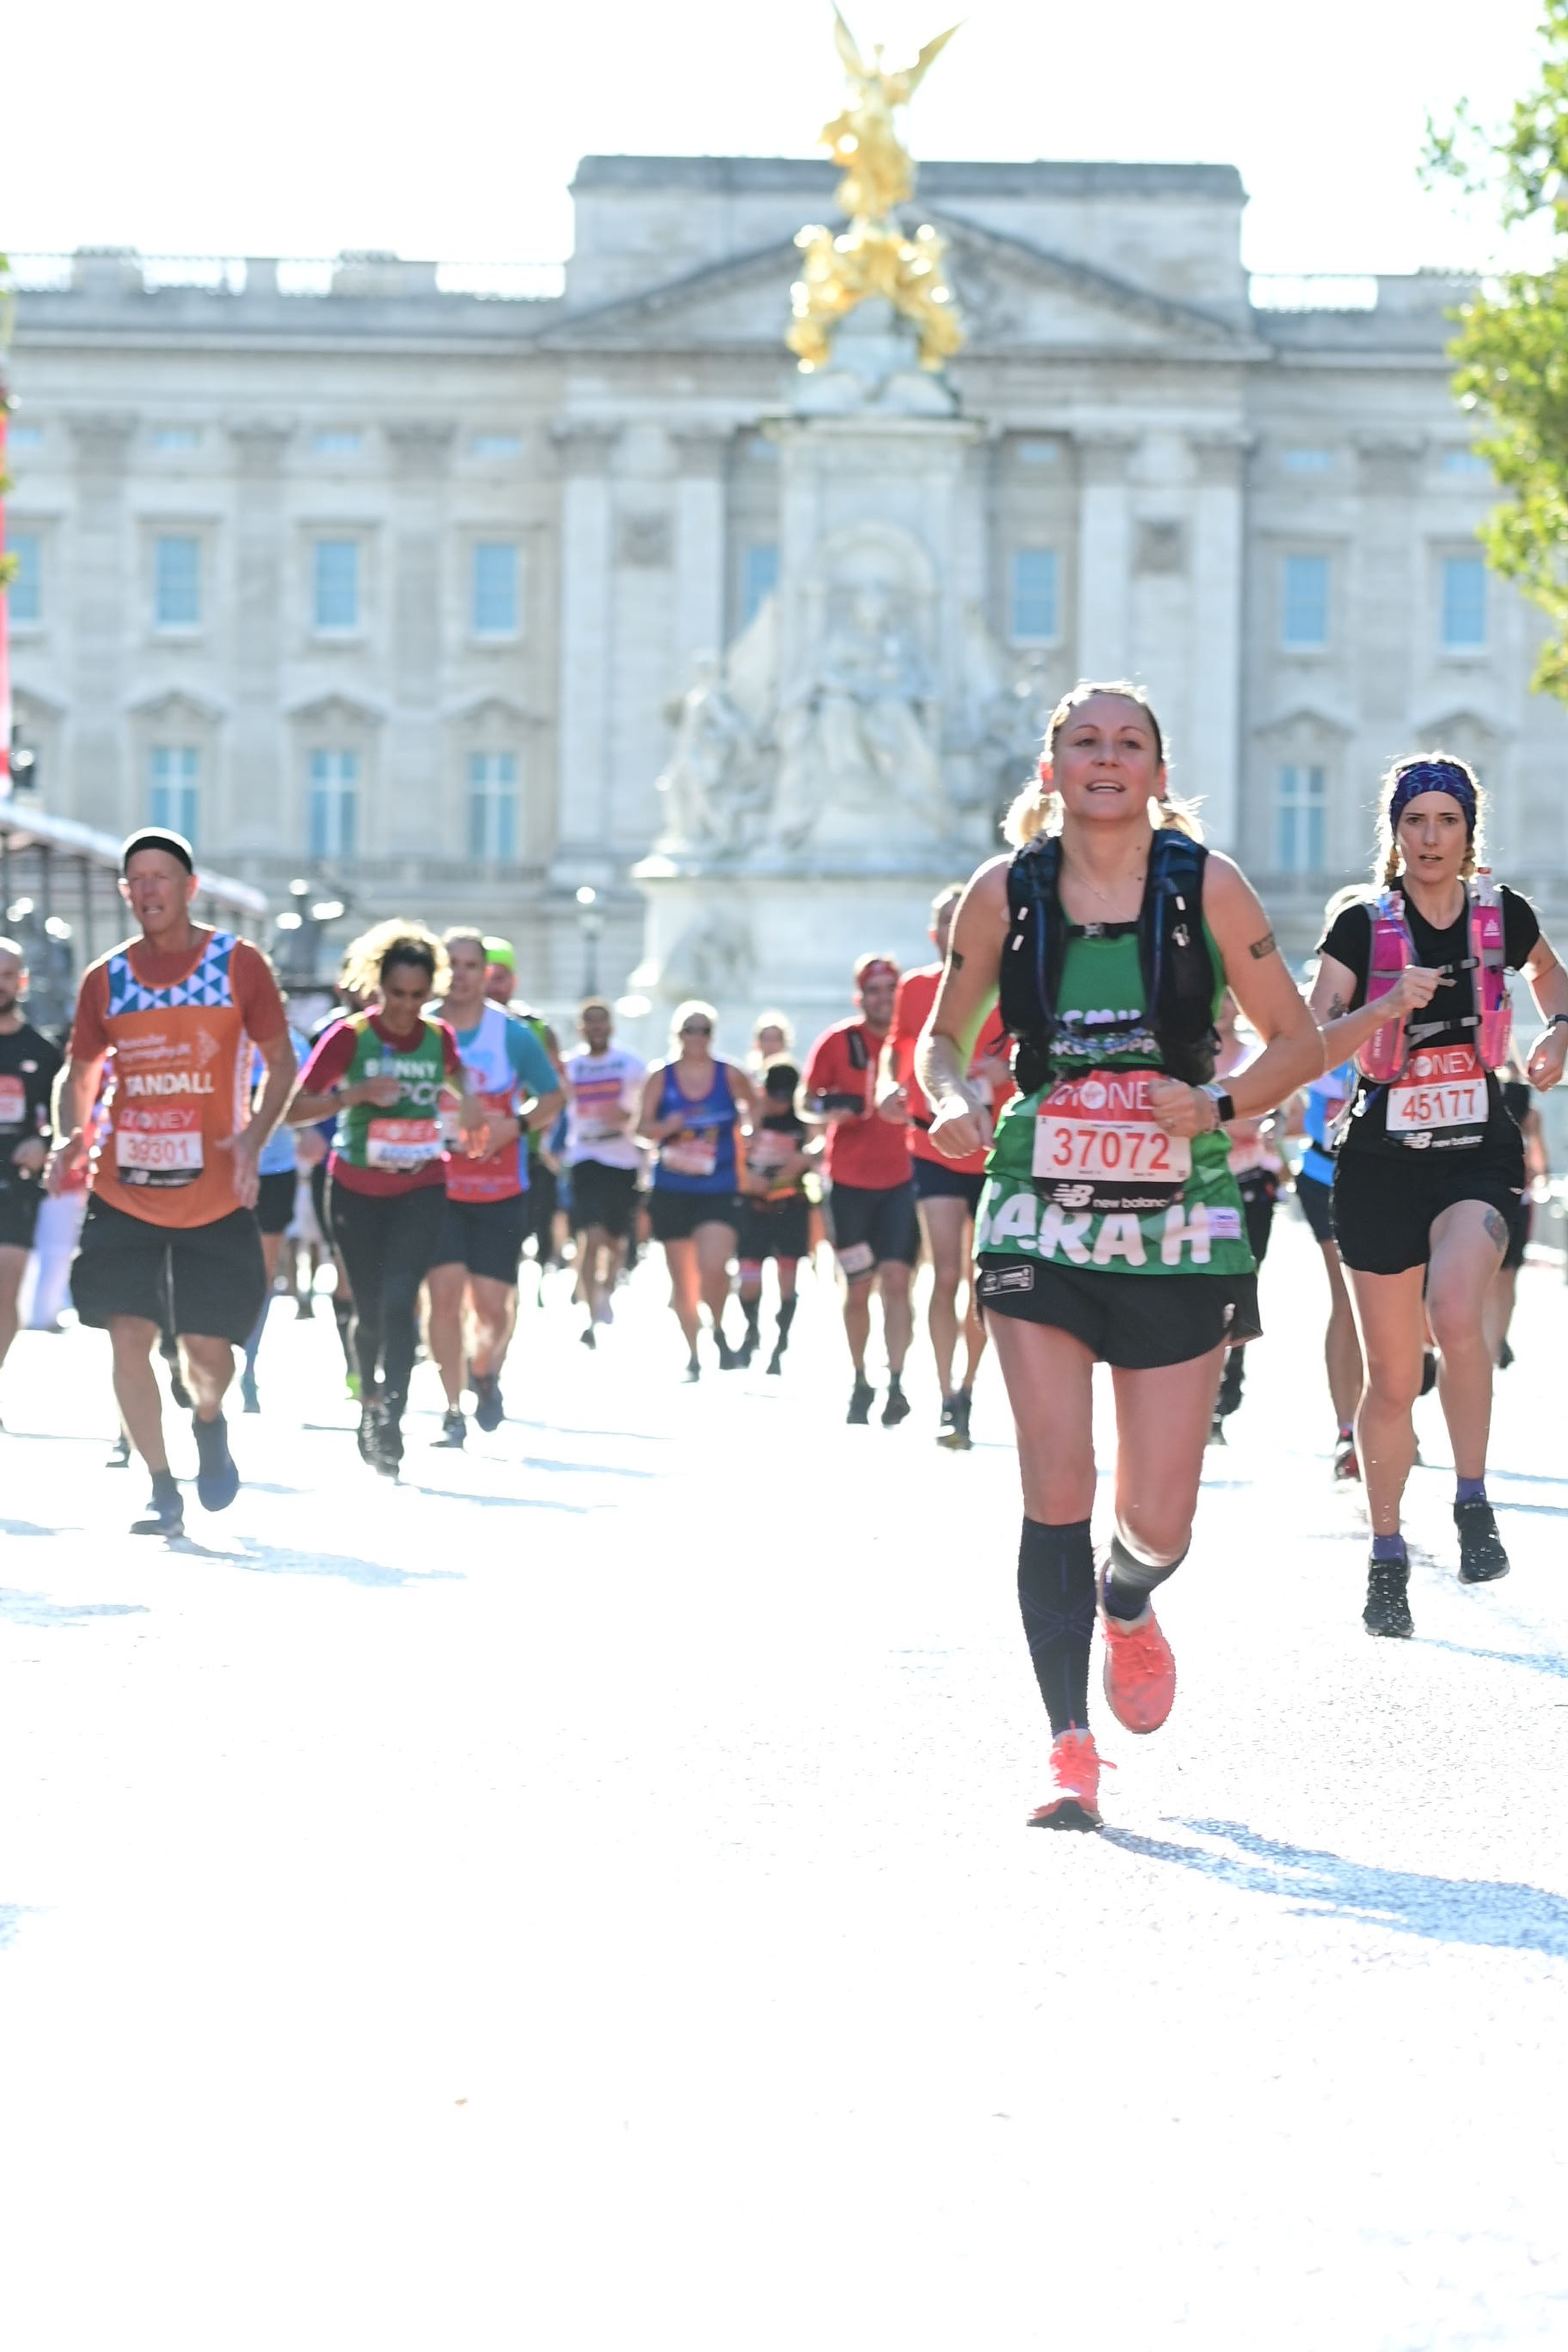 Sarah Finishes London Marathon and raises funds for Charity